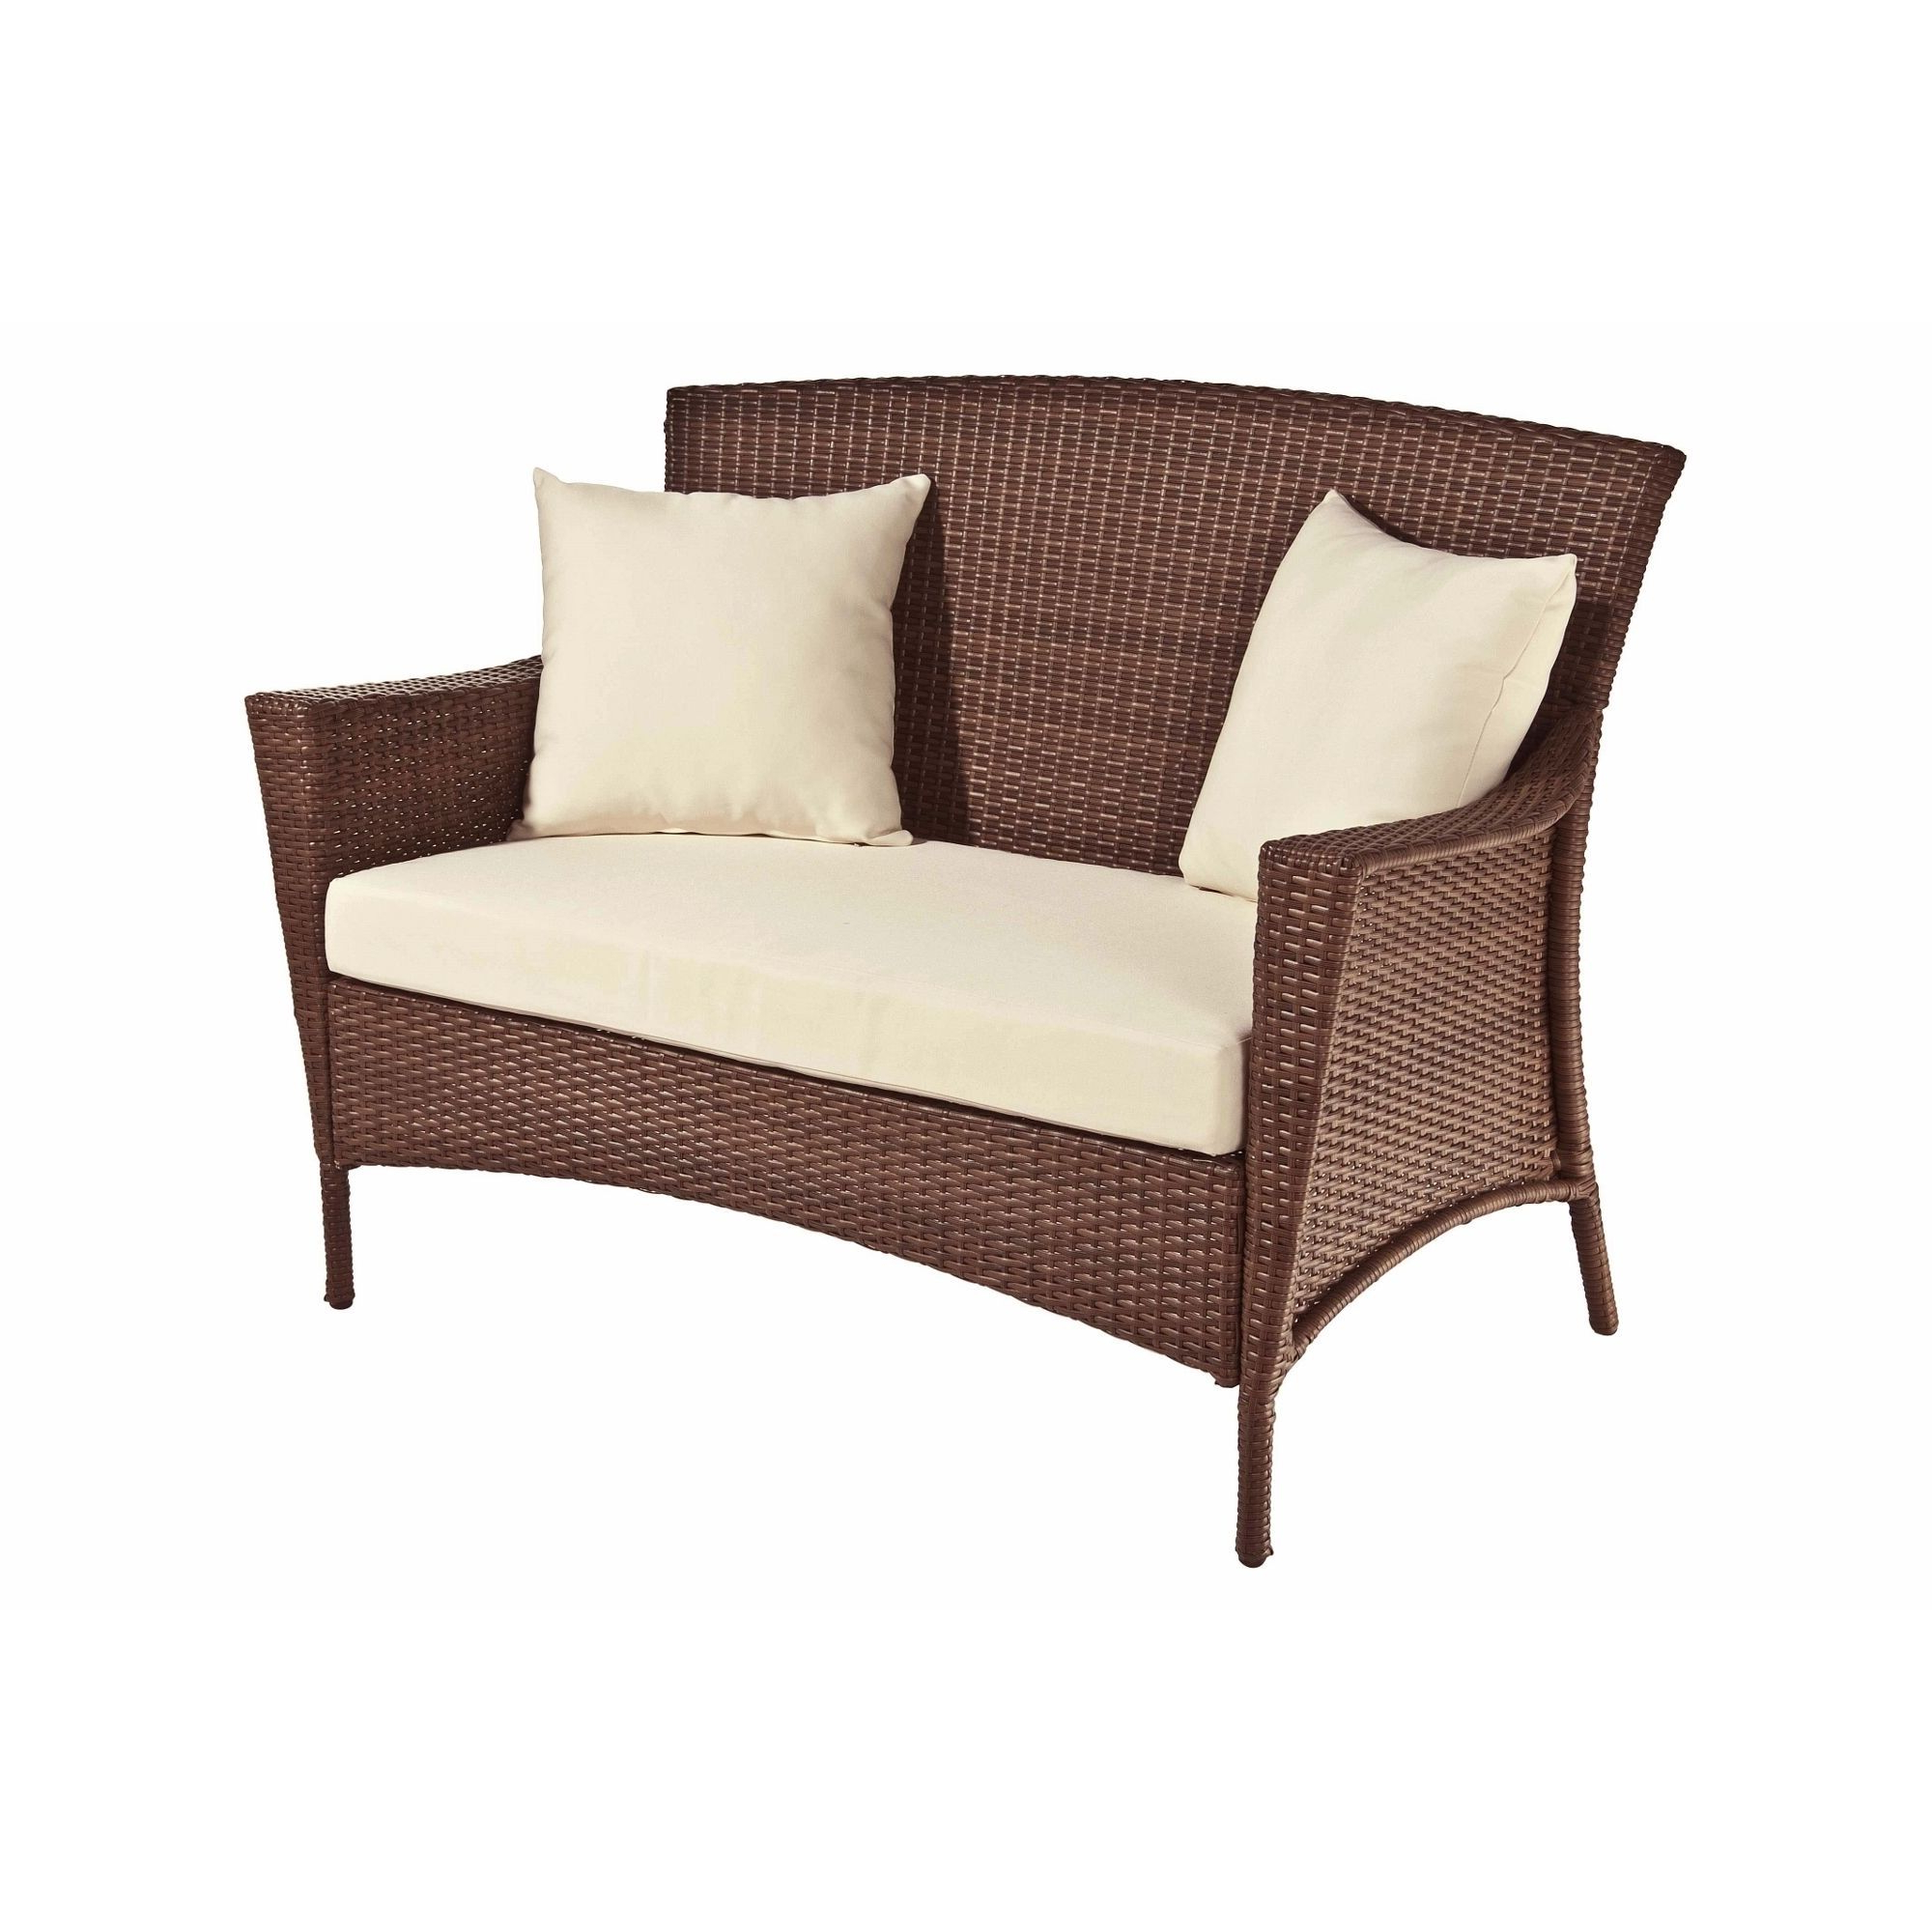 Mullenax Outdoor Loveseats With Cushions Throughout Most Popular Panama Jack Key Biscayne Woven Loveseat With Cushion (View 20 of 20)